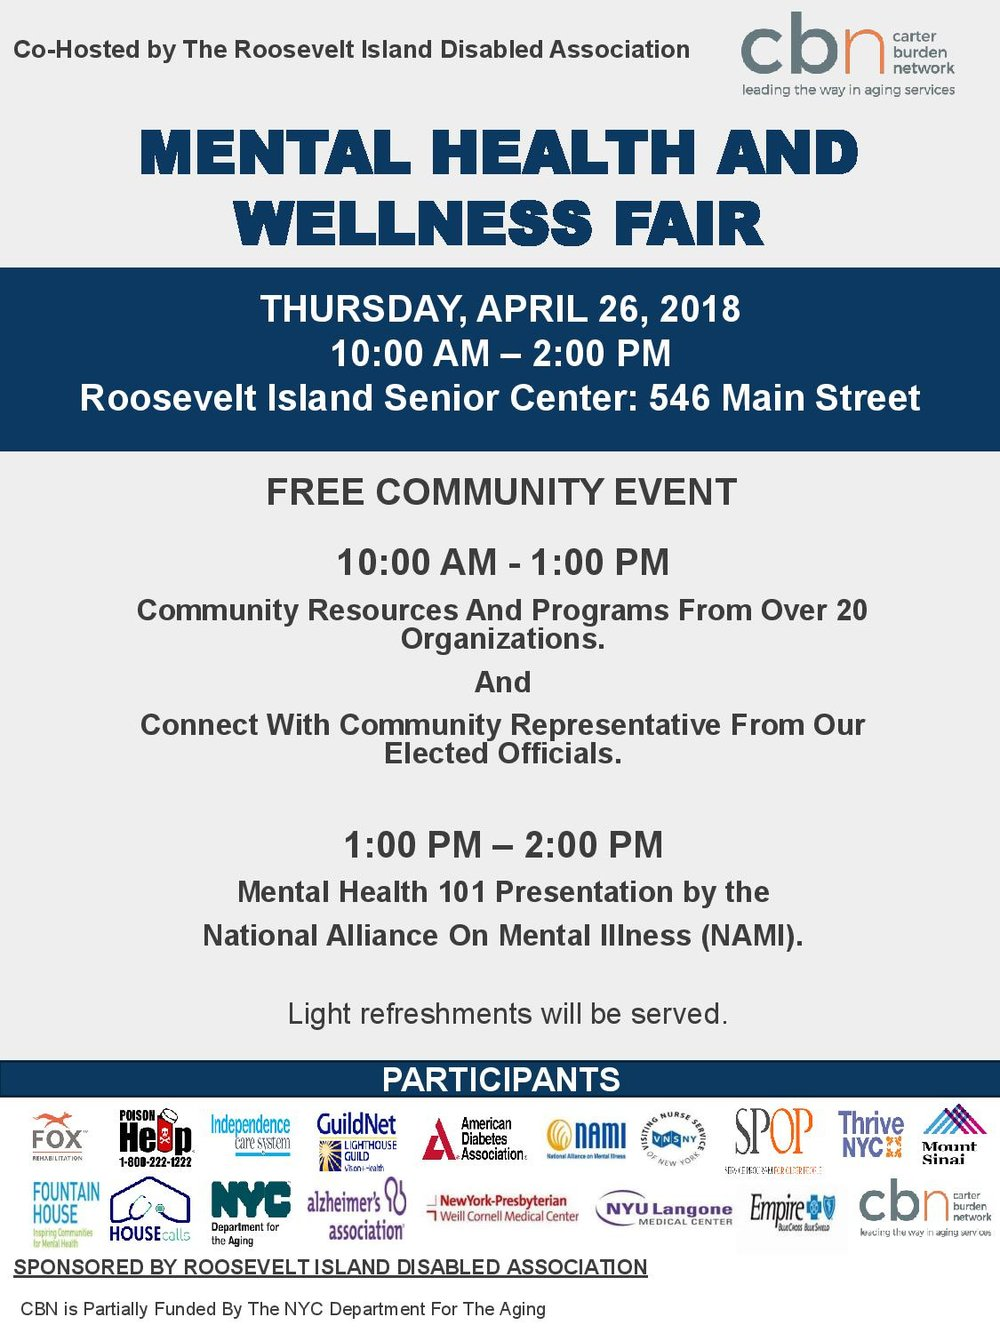 RISC Mental Health and Wellness Fair Flyer-page-001.jpg